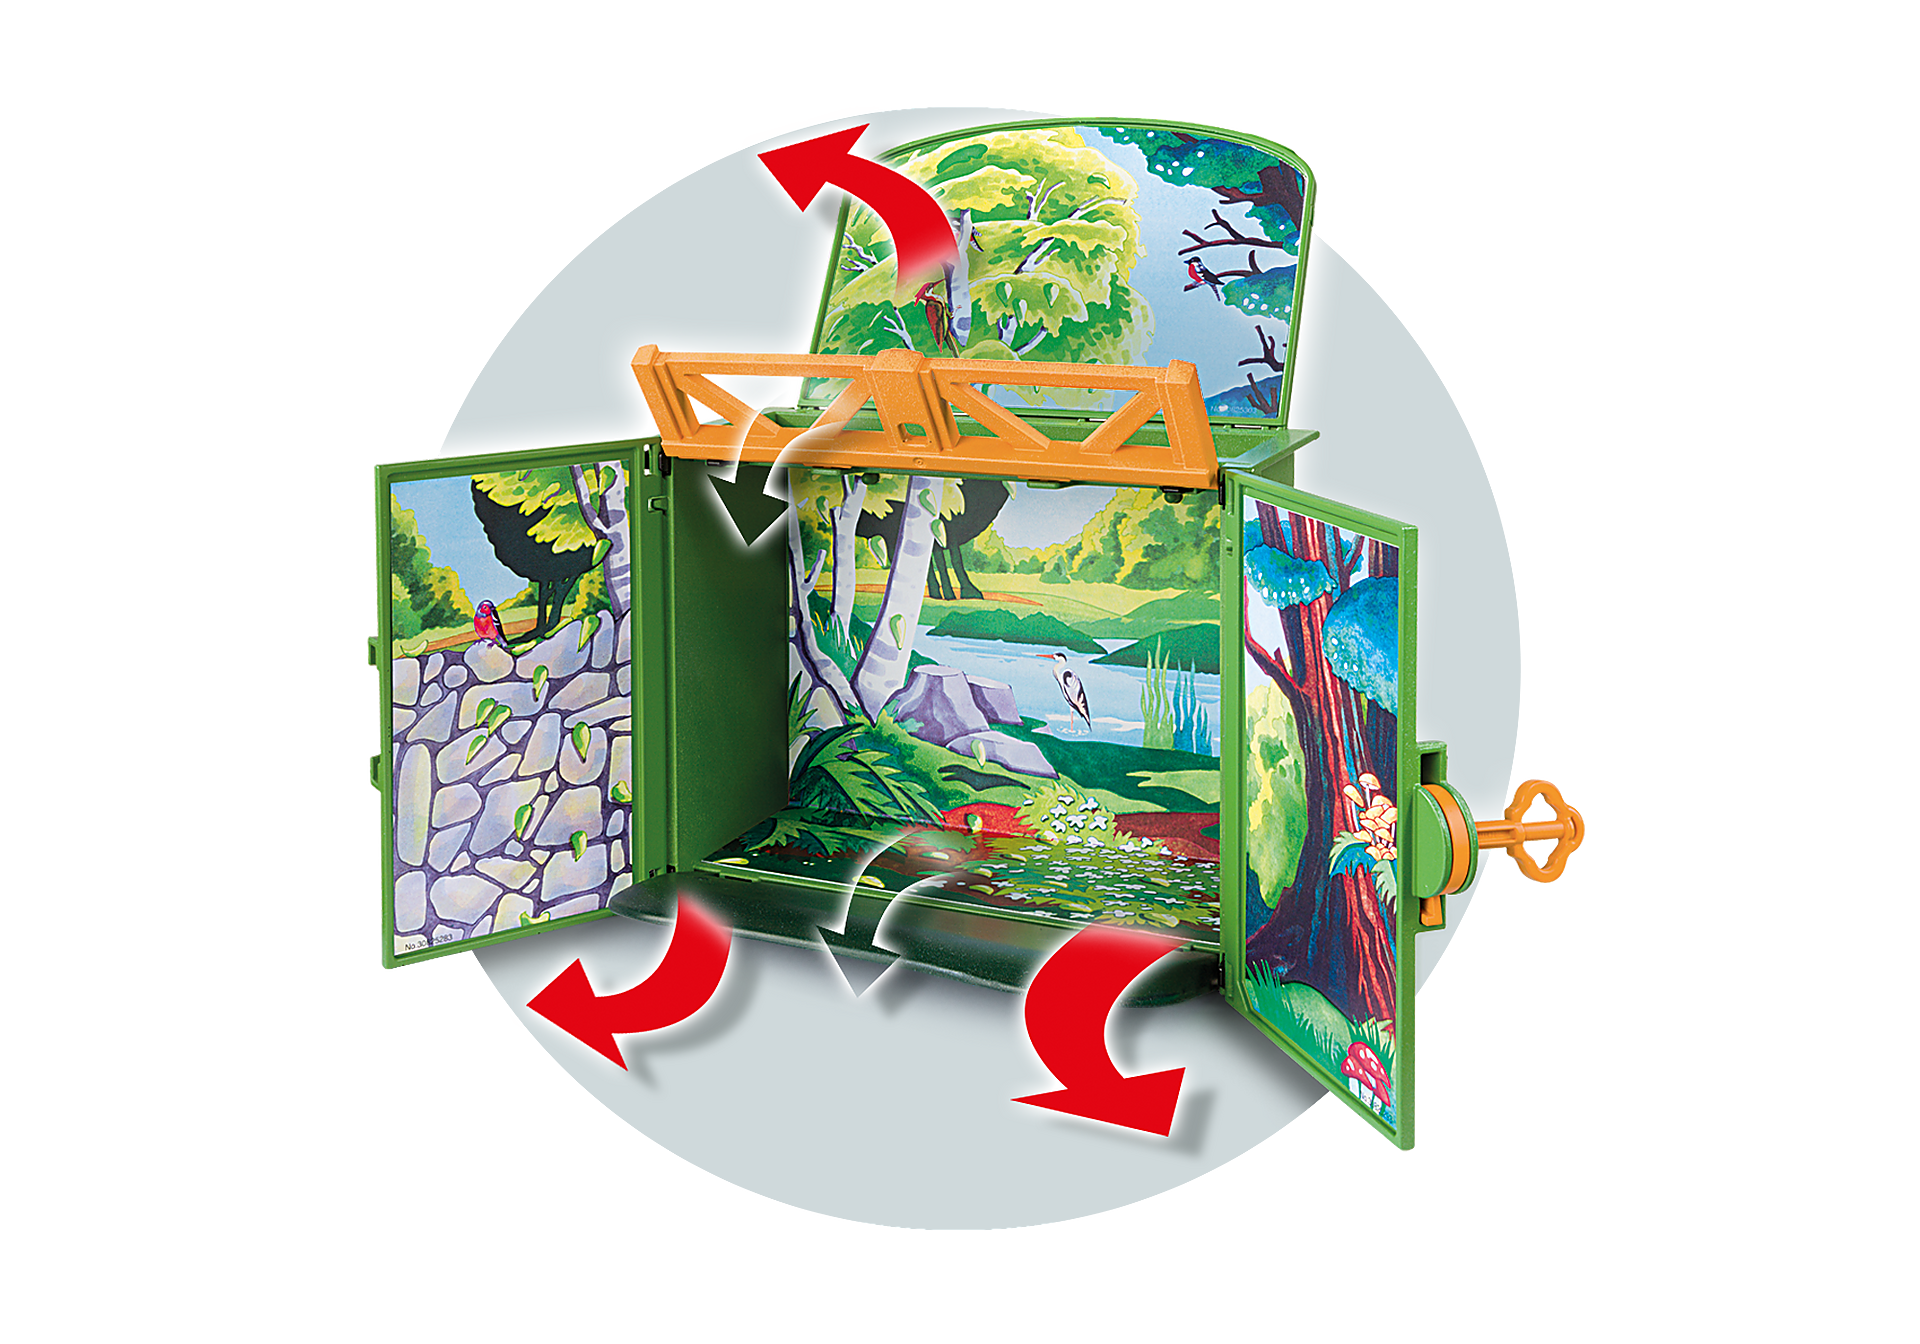 6158 My Secret Forest Animals Play Box zoom image5